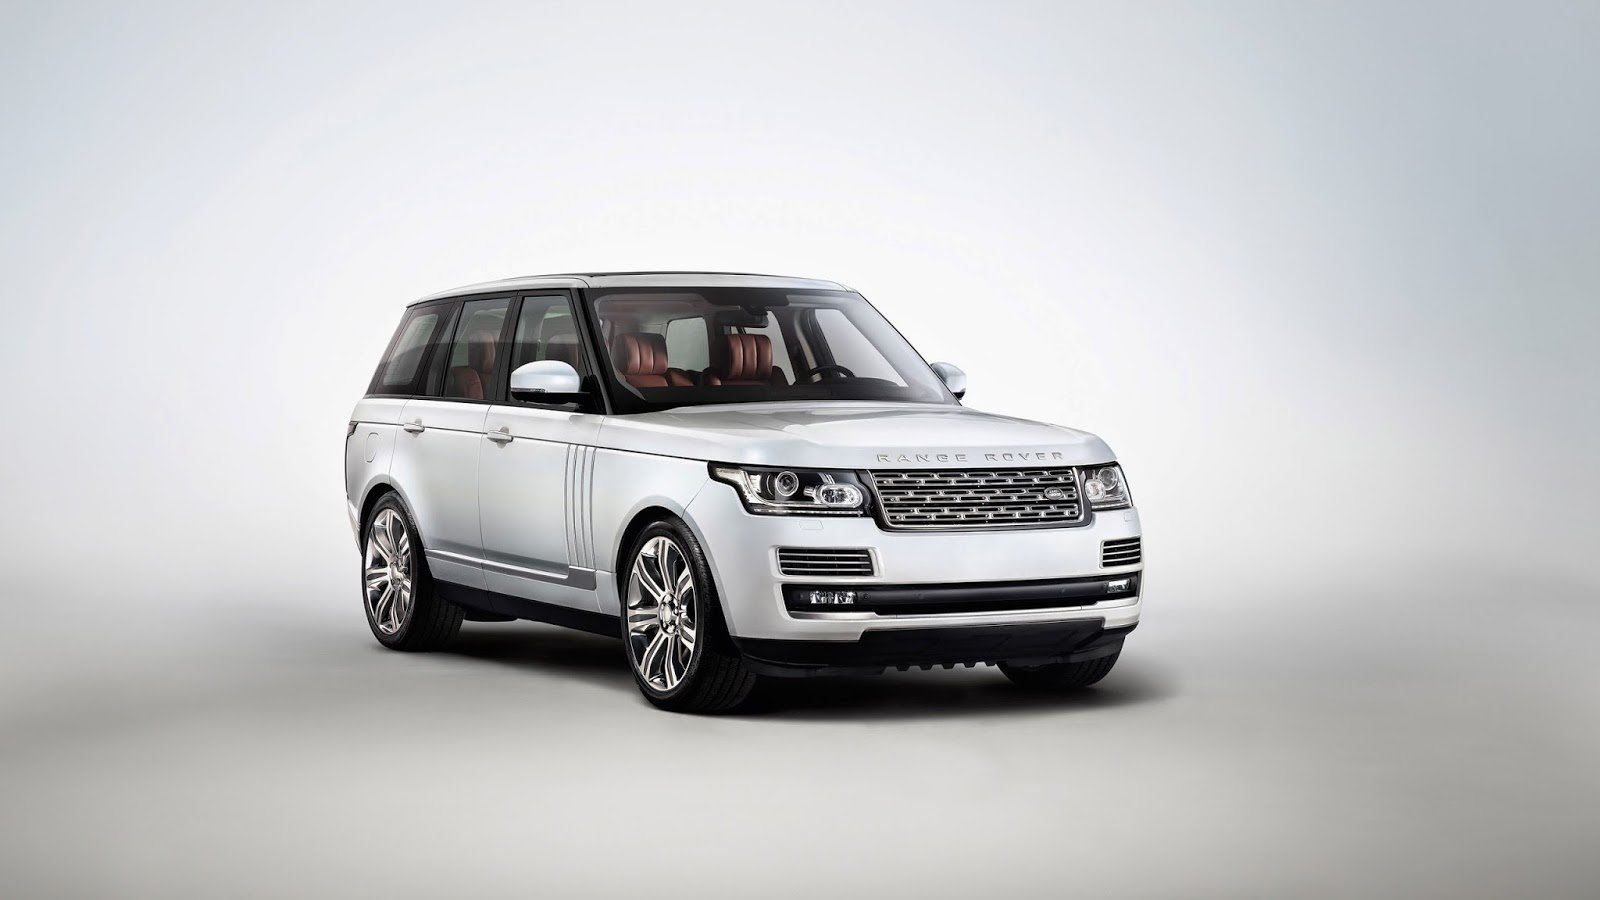 Latest Land Rover Range Rover Cars Hd Wallpapers Soft Wallpapers Free Download